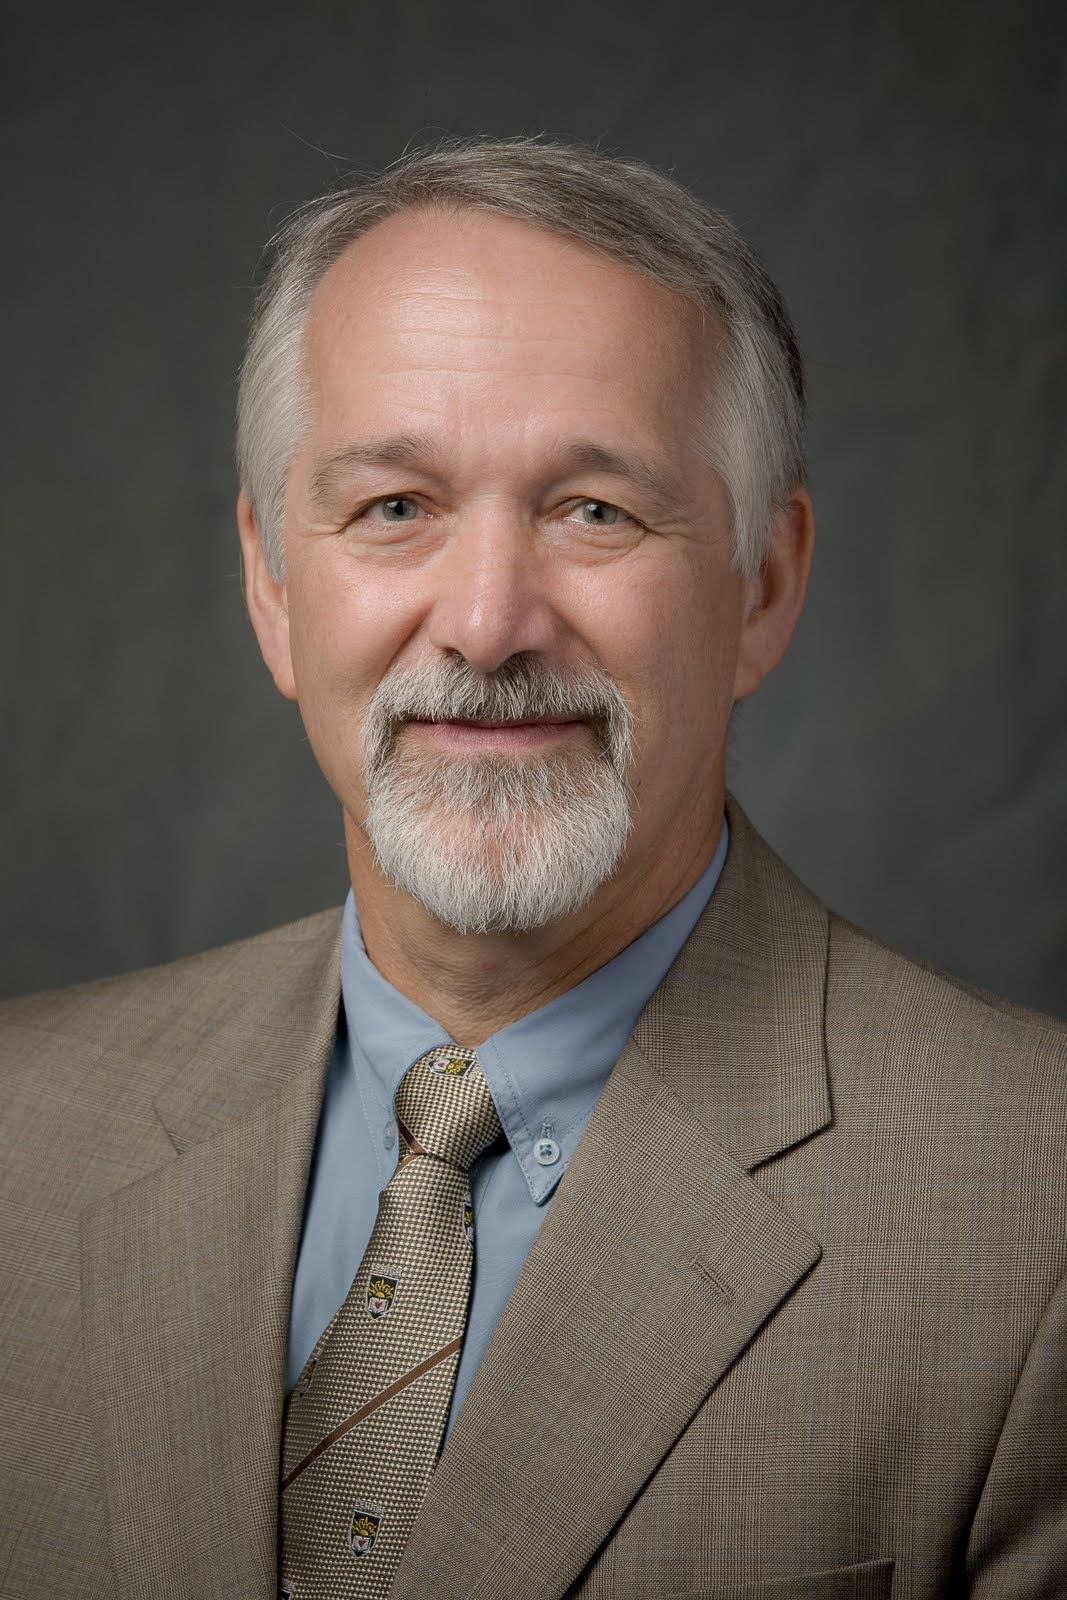 Dr. Tamás Terlaky, a professor of industrial and systems engineering at Lehigh University